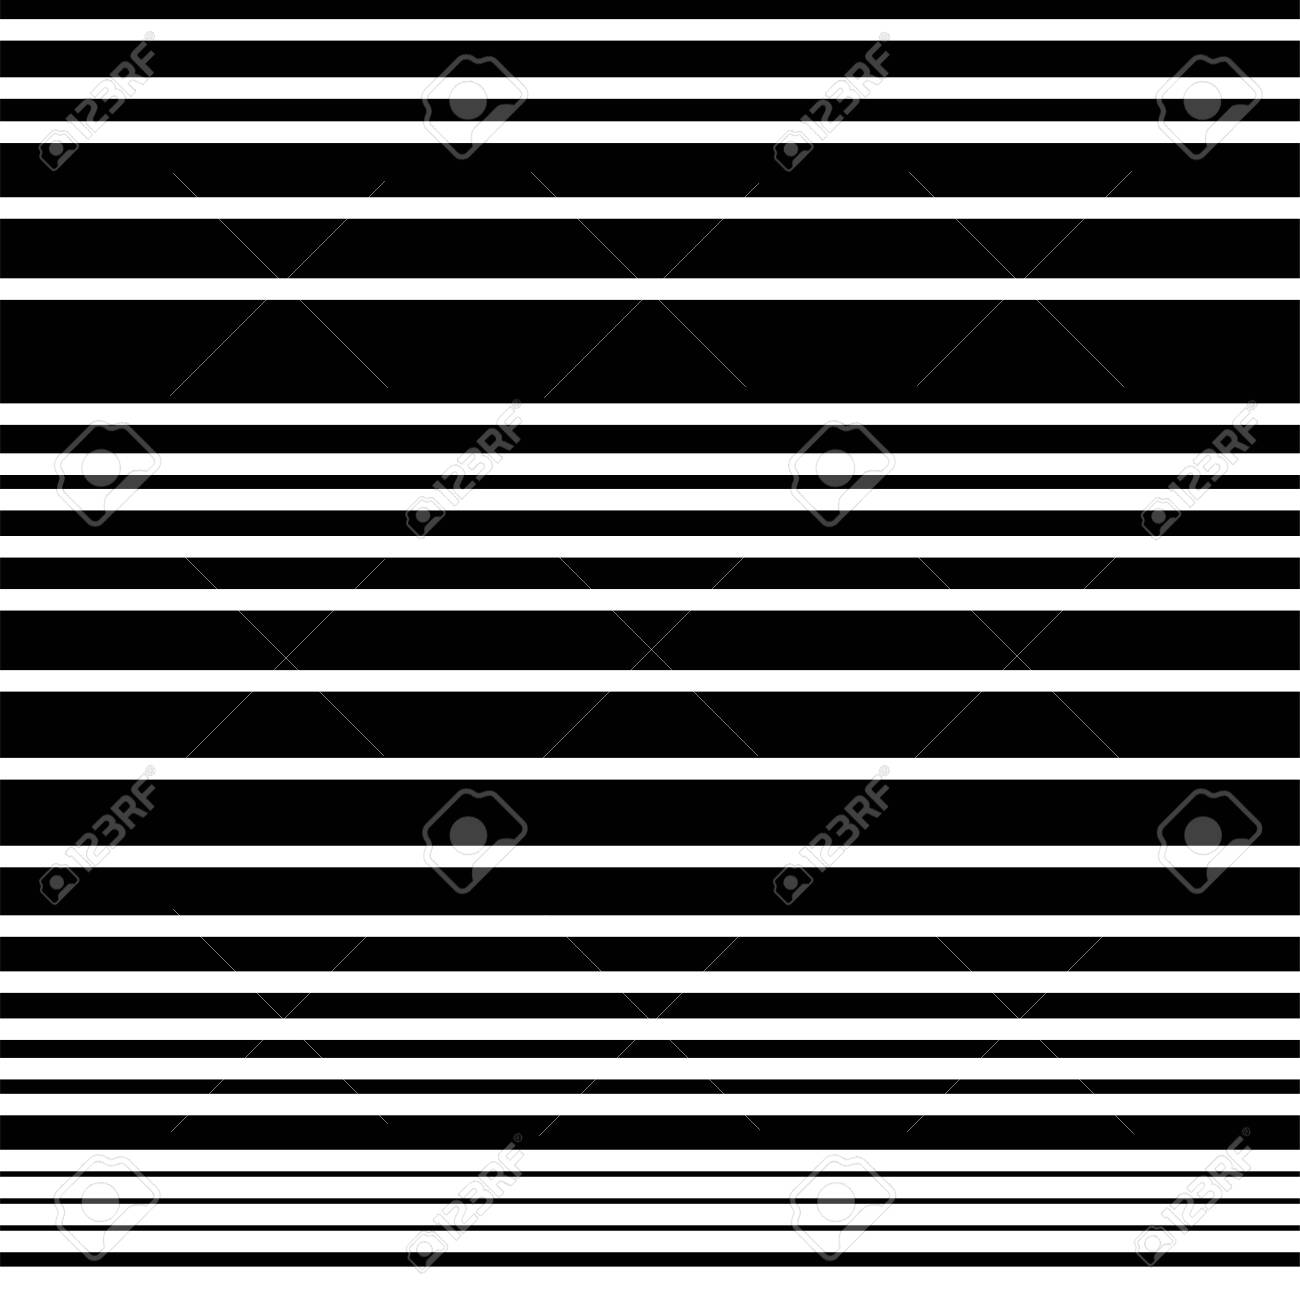 Narrow Black White Horizontal Lines Striped Seamless Pattern Royalty Free Cliparts Vectors And Stock Illustration Image 122368432